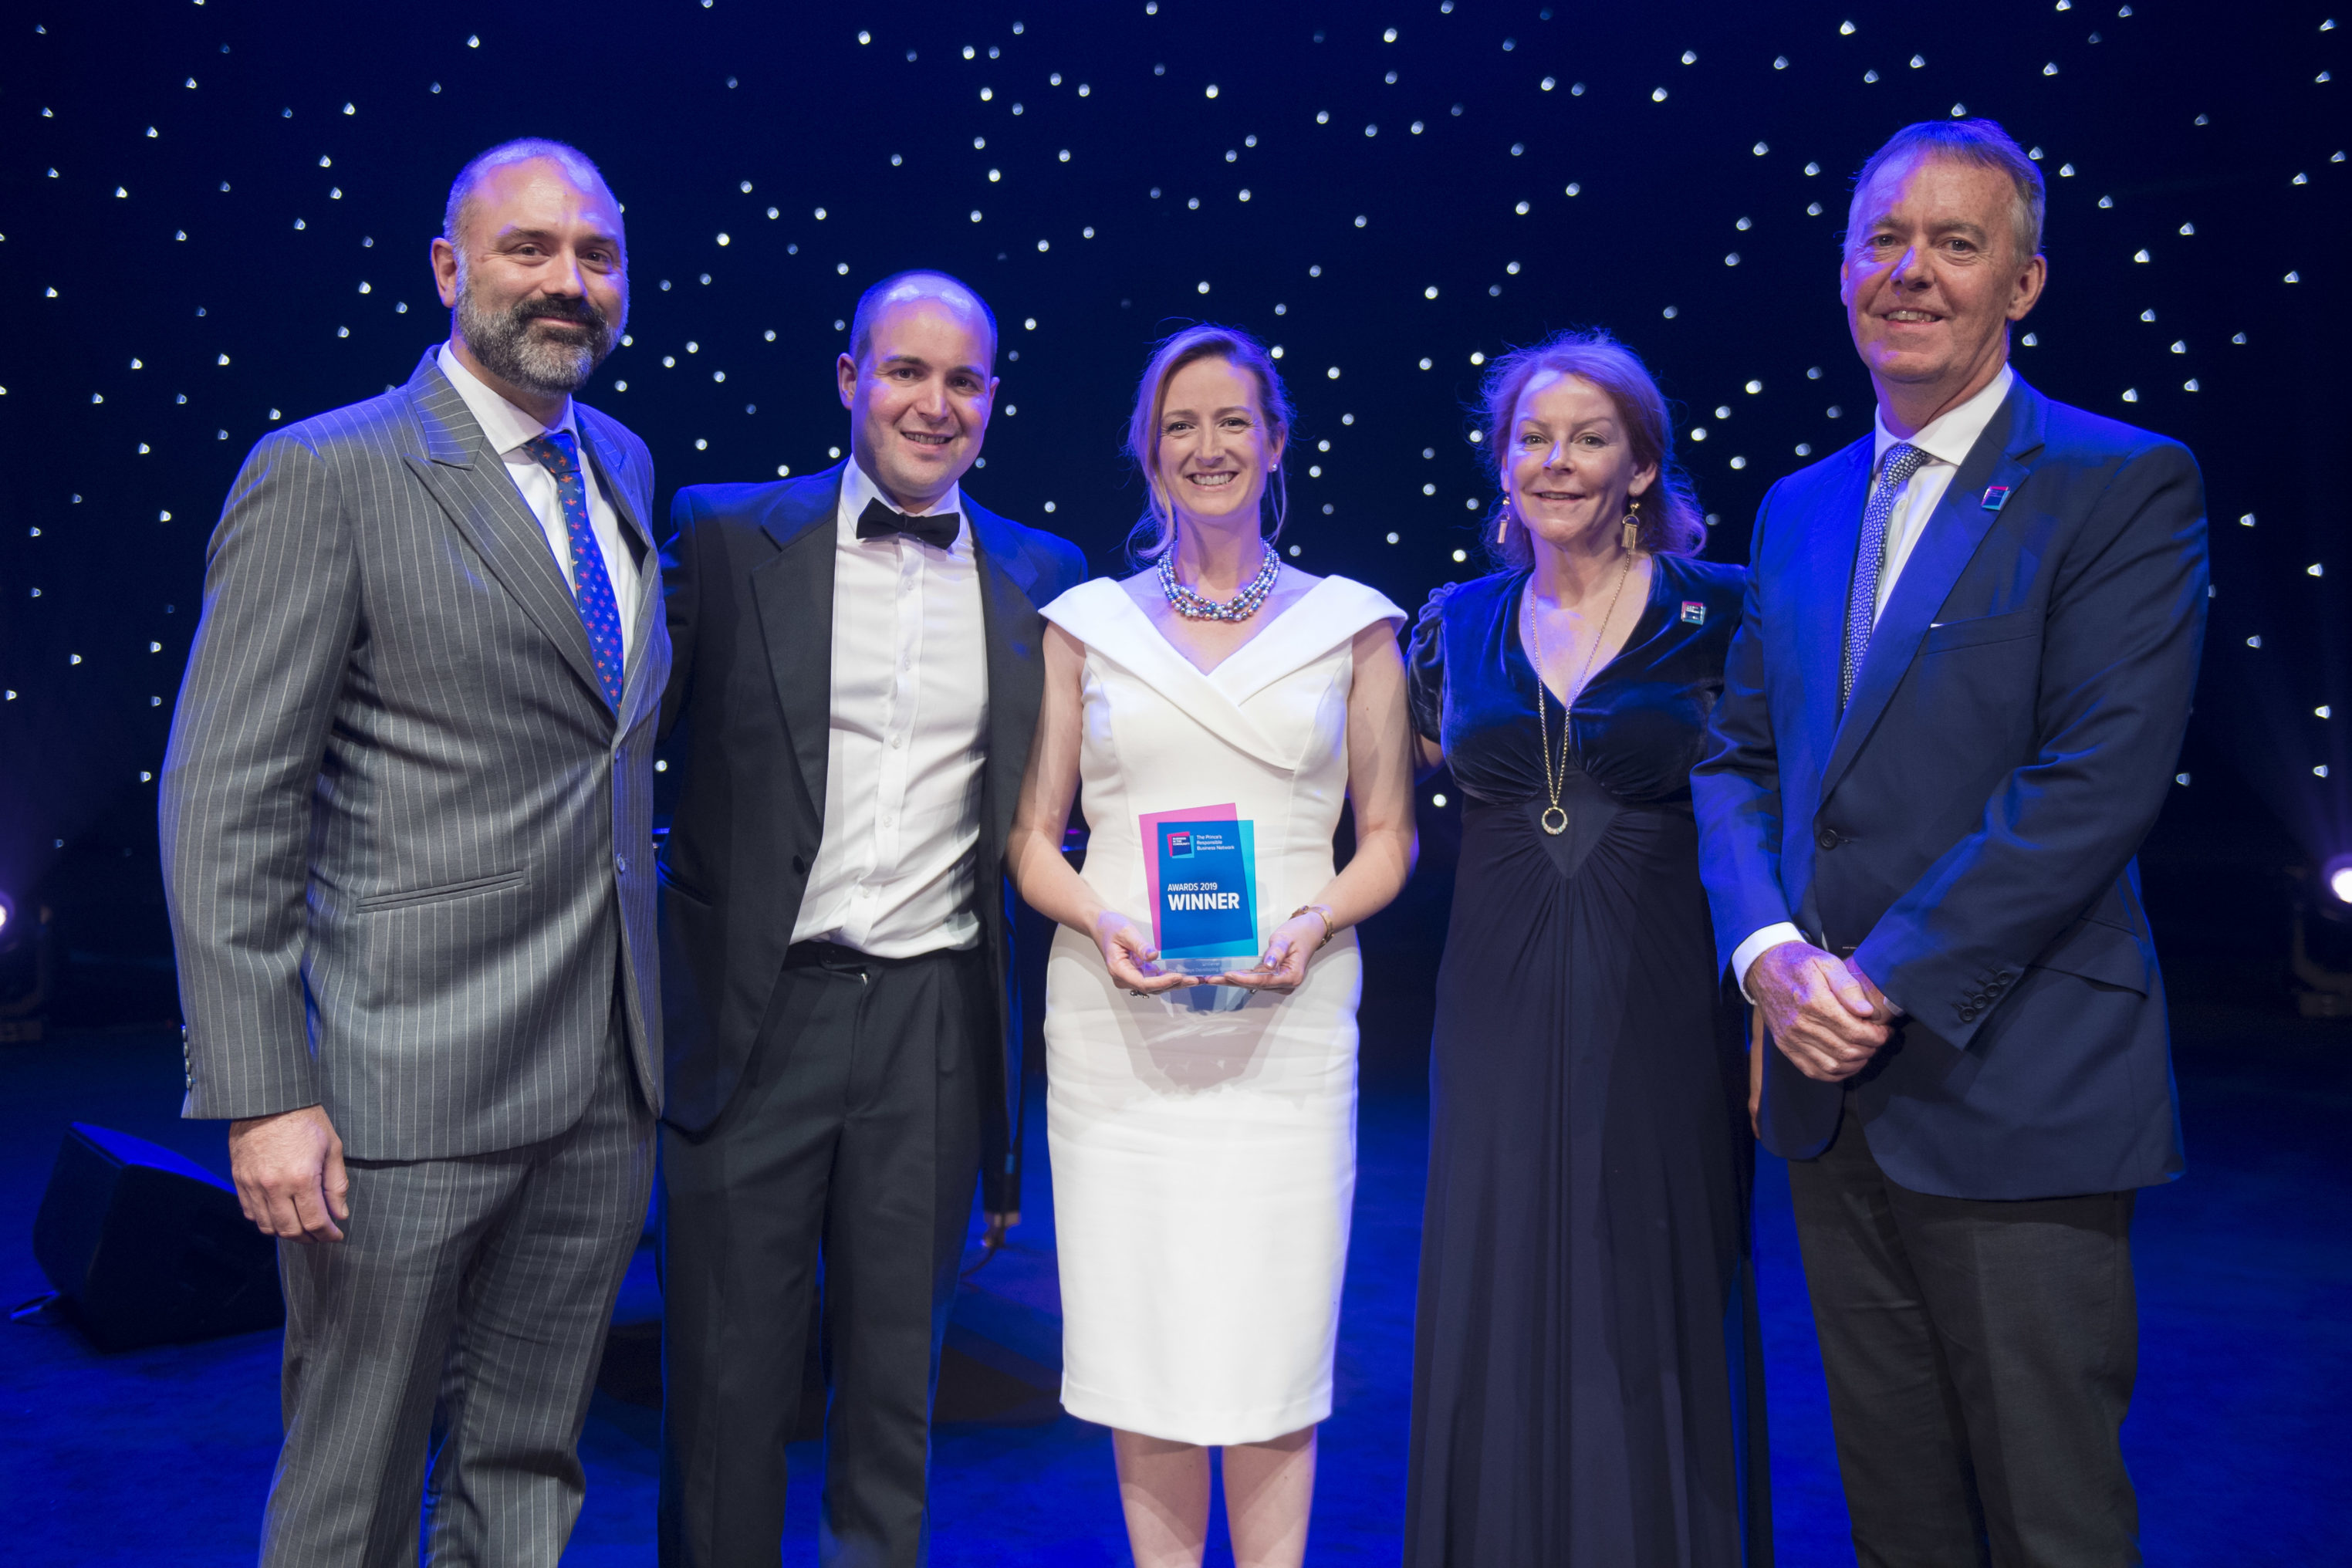 Business Continuity Planning: Winner Of The 'Developing Resilience' Award